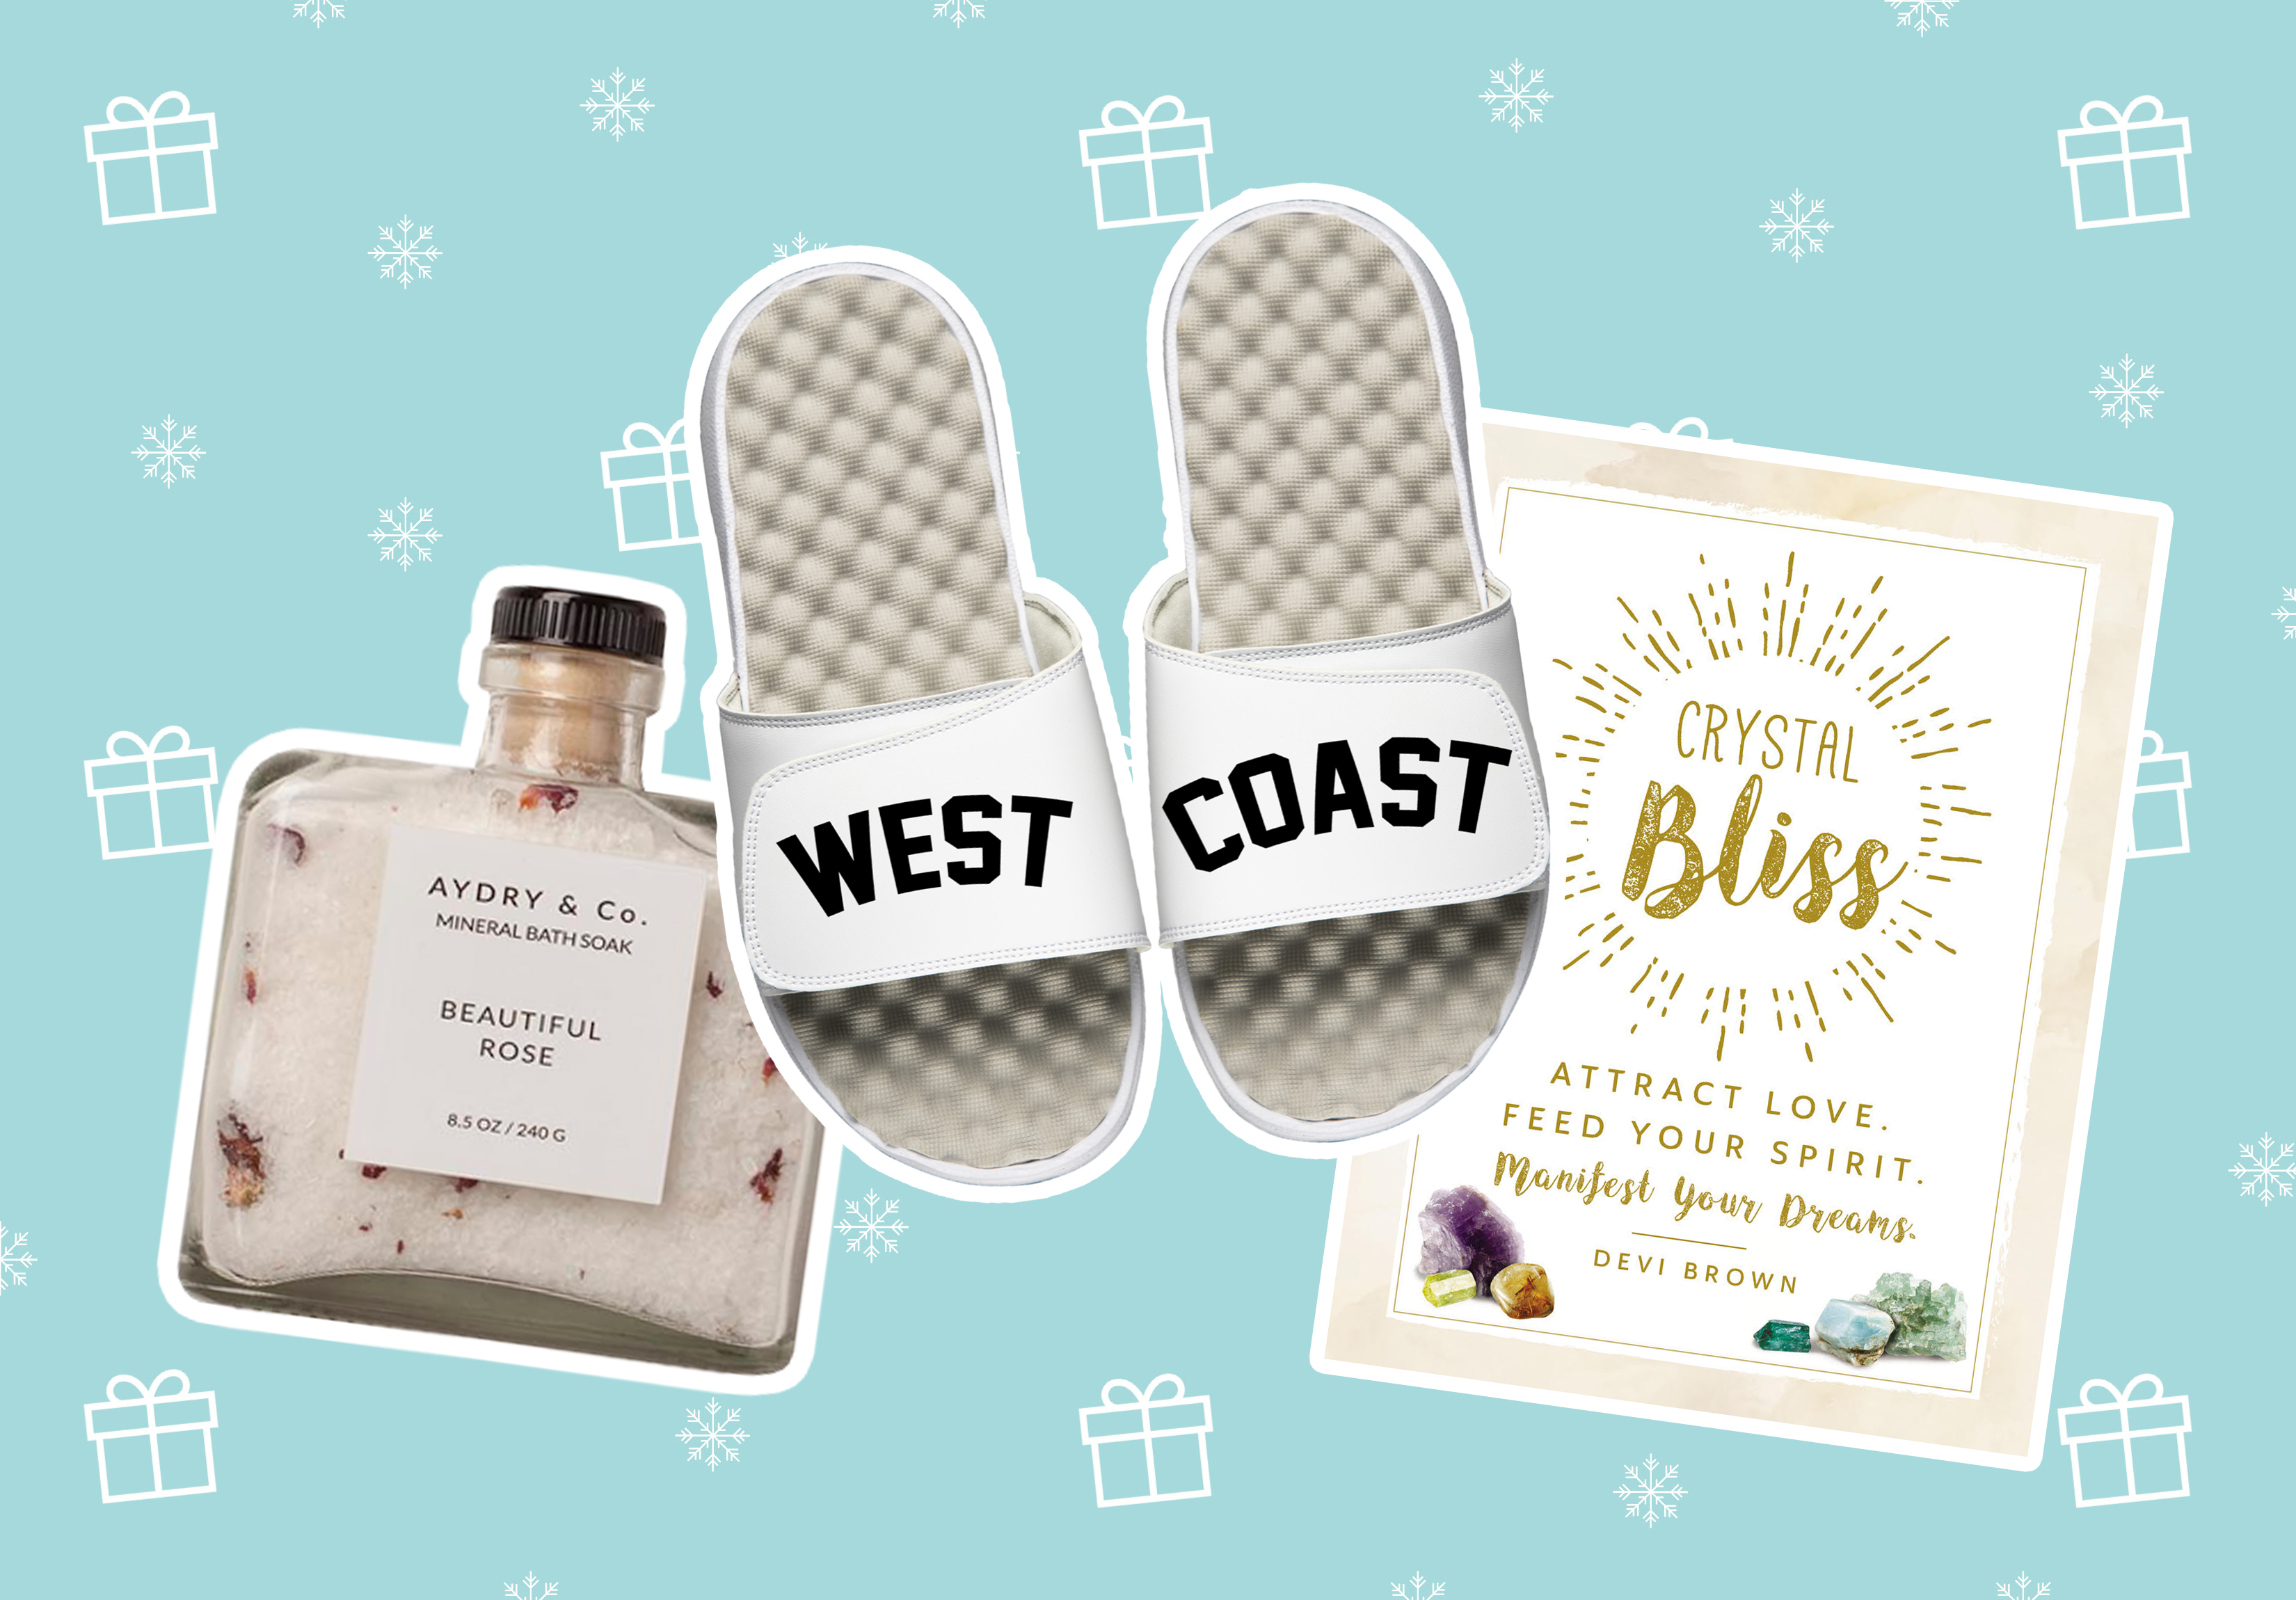 21 holiday gifts for your family members who call the West Coast home